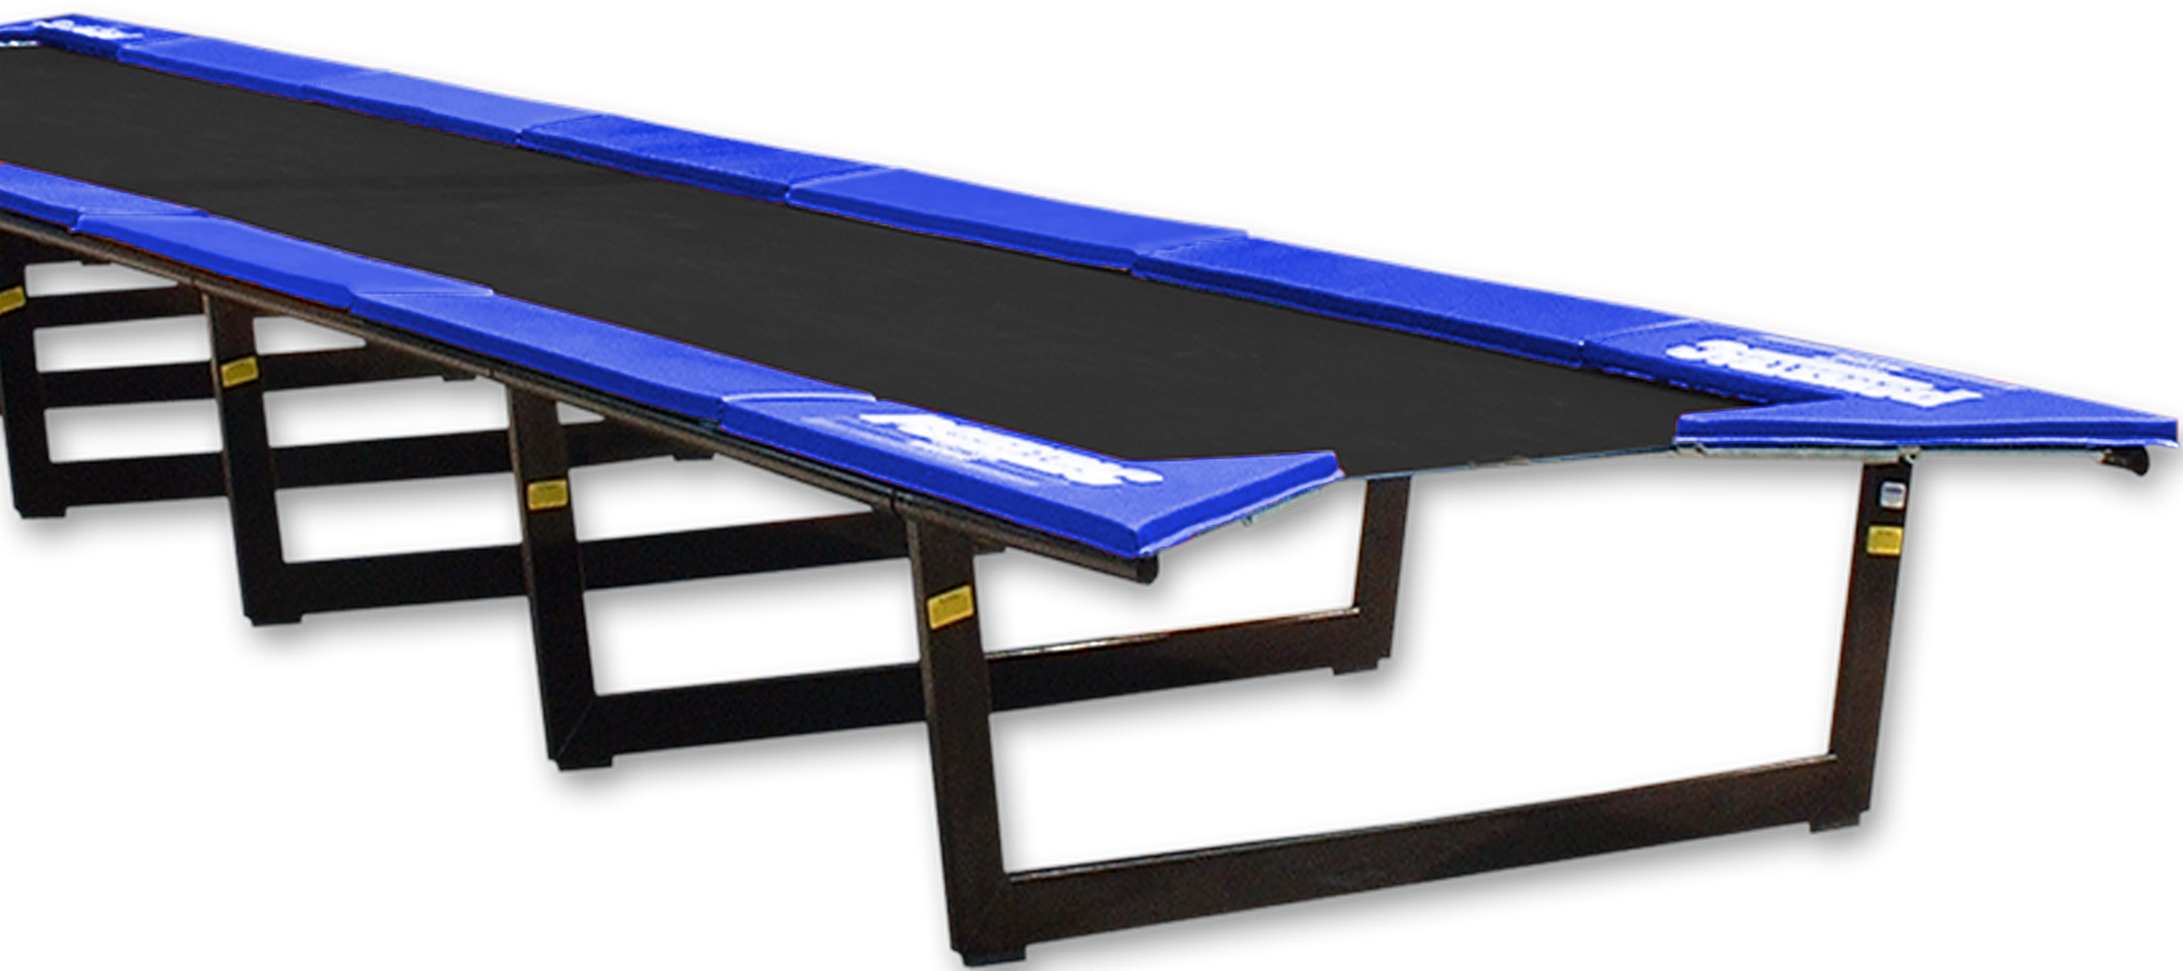 PowerTrac Power Track is a tumbling trampoline used in the training of tumbling and gymnastics skills